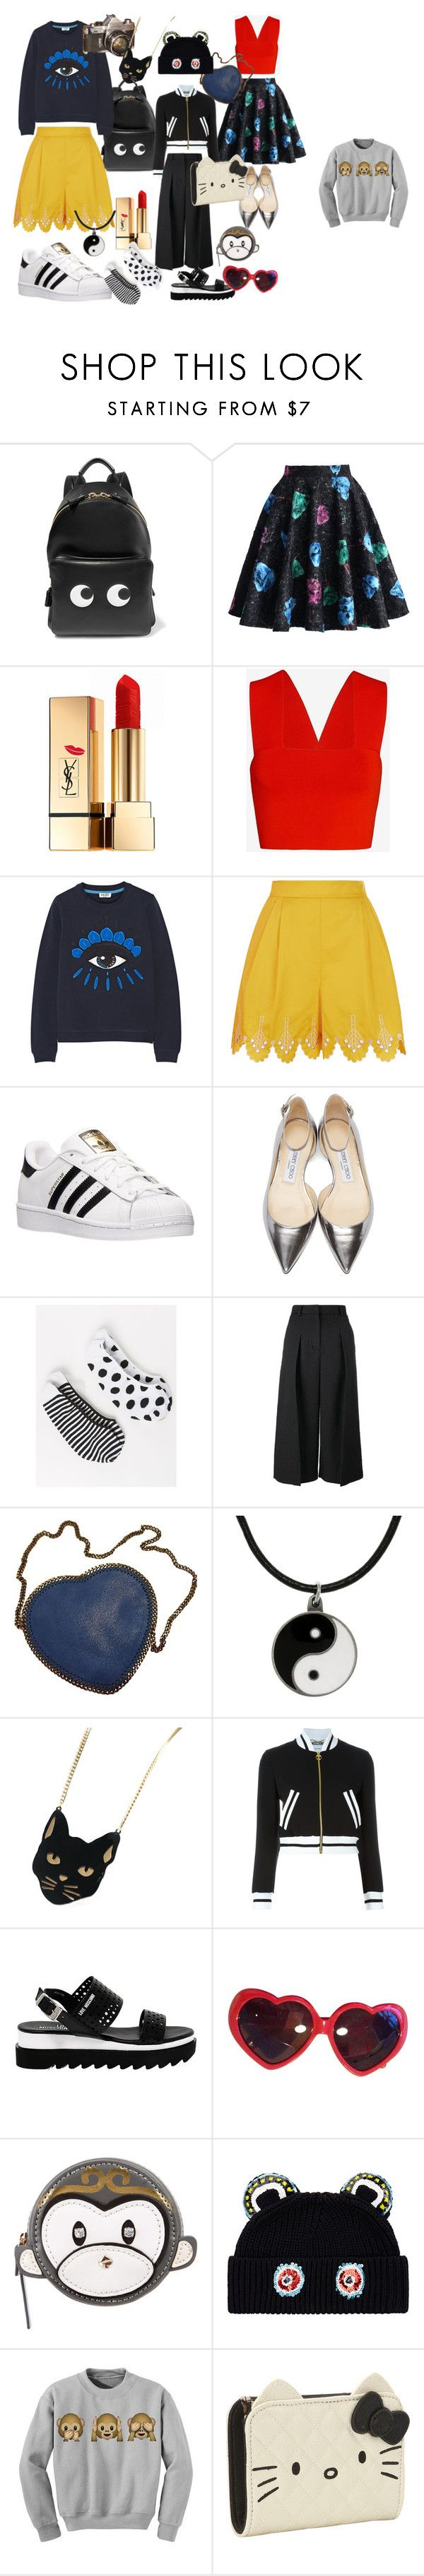 """Chinese Hong Kong Style"" by jenny-ragnwaldh on Polyvore featuring Anya Hindmarch, Chicwish, Yves Saint Laurent, A.L.C., Kenzo, Temperley London, adidas, Jimmy Choo, Lane Bryant and Erdem"